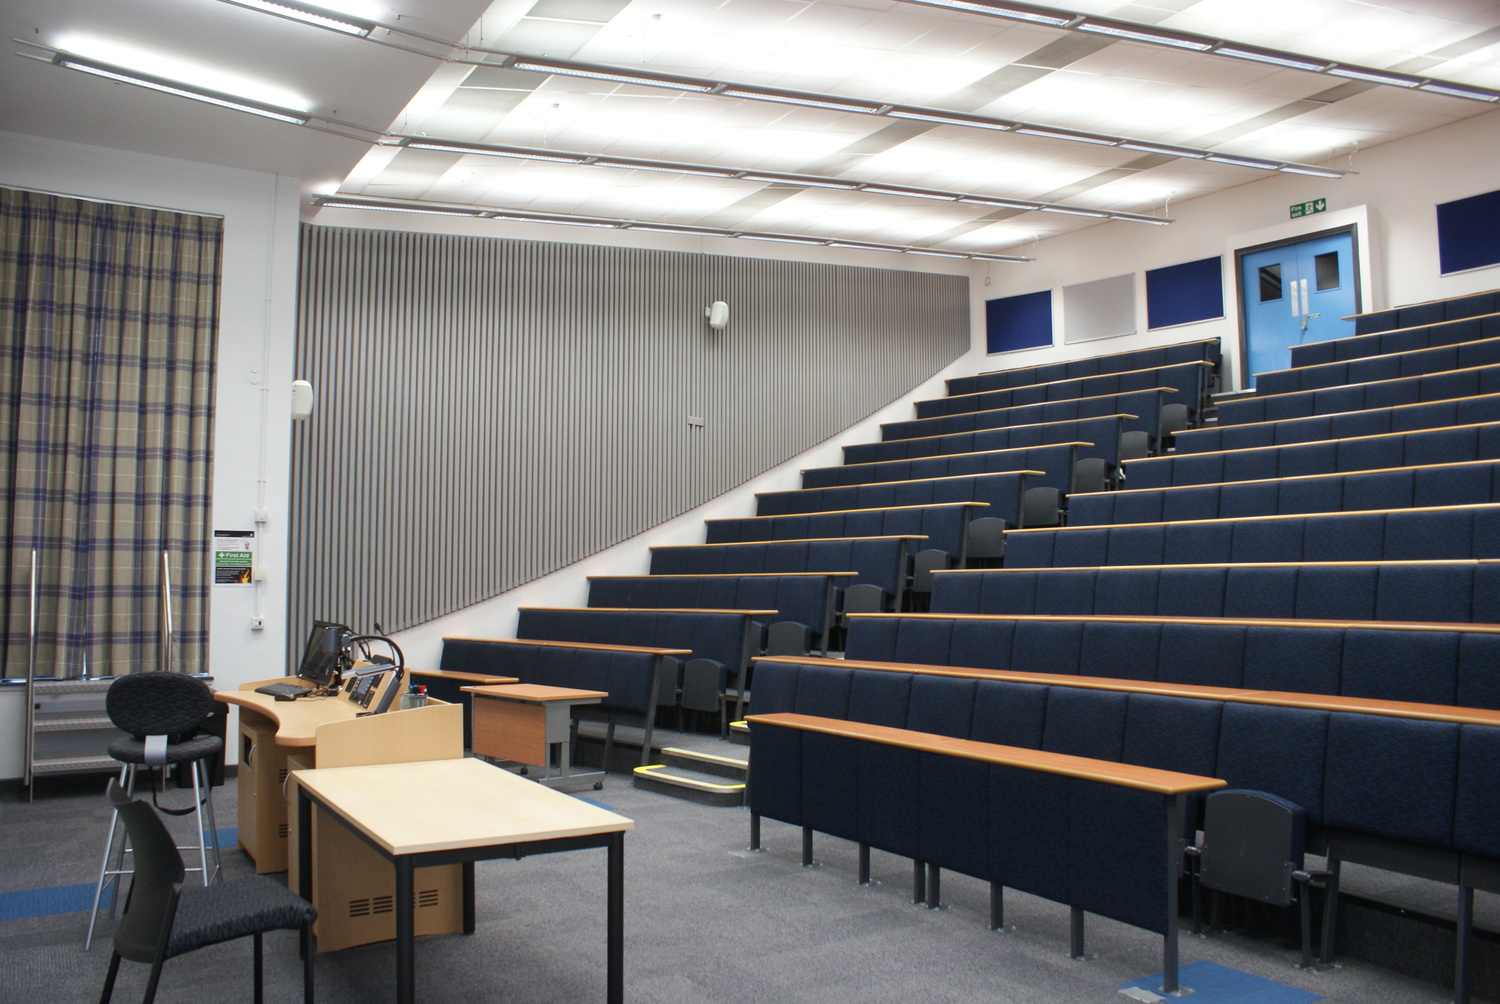 Crabtree Lecture Theatre, Mechanical Engineering - CTS 2015